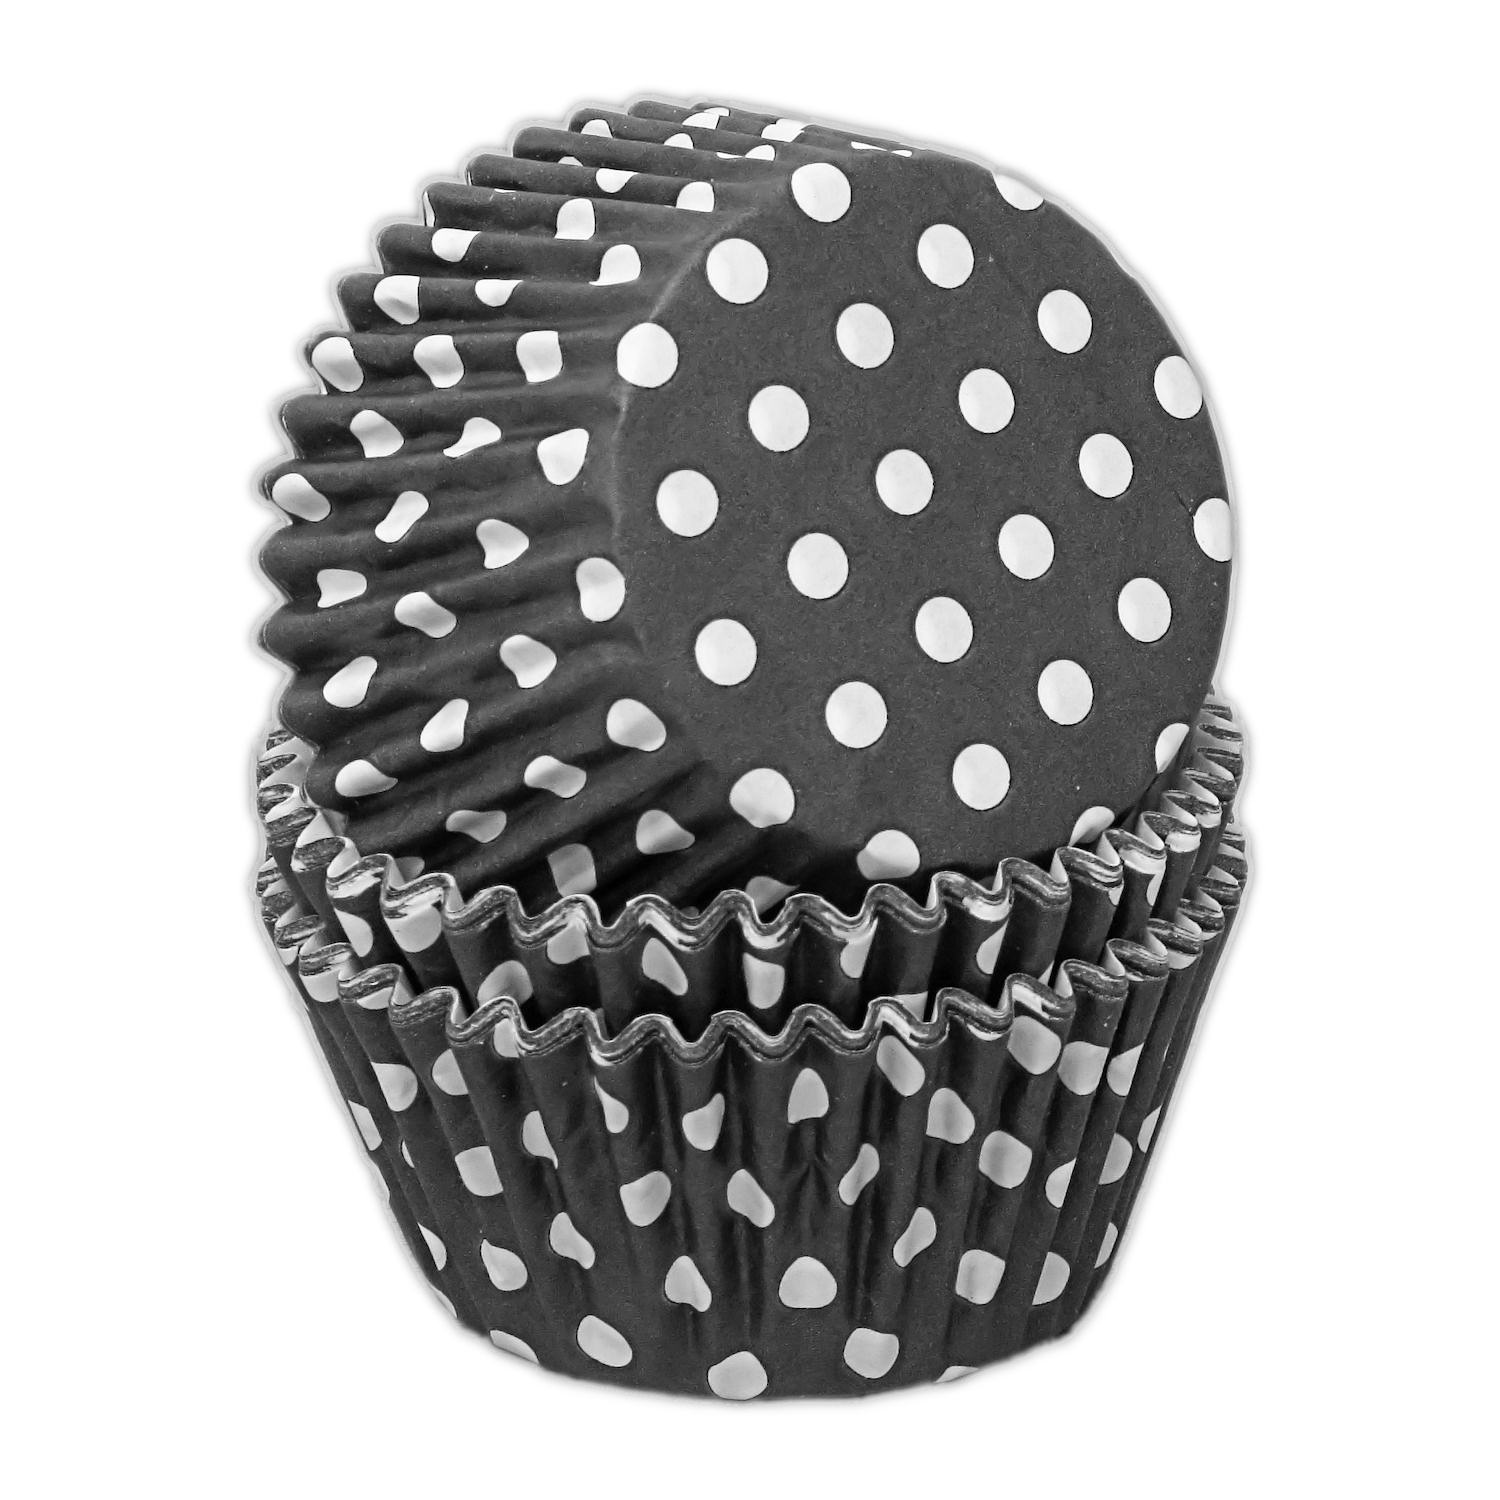 CCBS7760 - Black Polka Dot Muffin Cases 51gsm 51mm x 38mm x 180